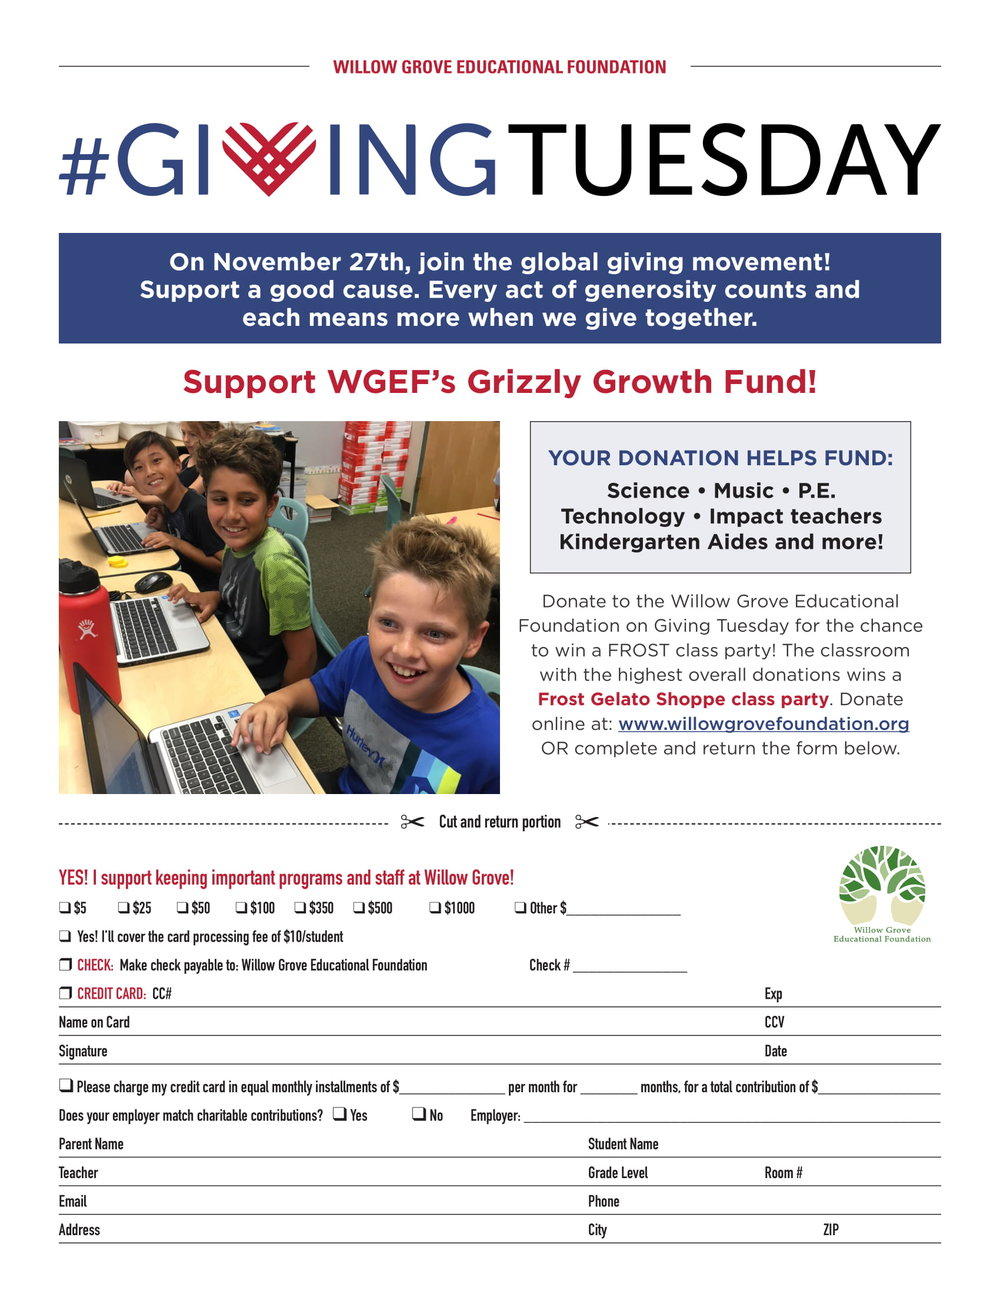 Giving Tuesday Flyer_v2-1.jpg